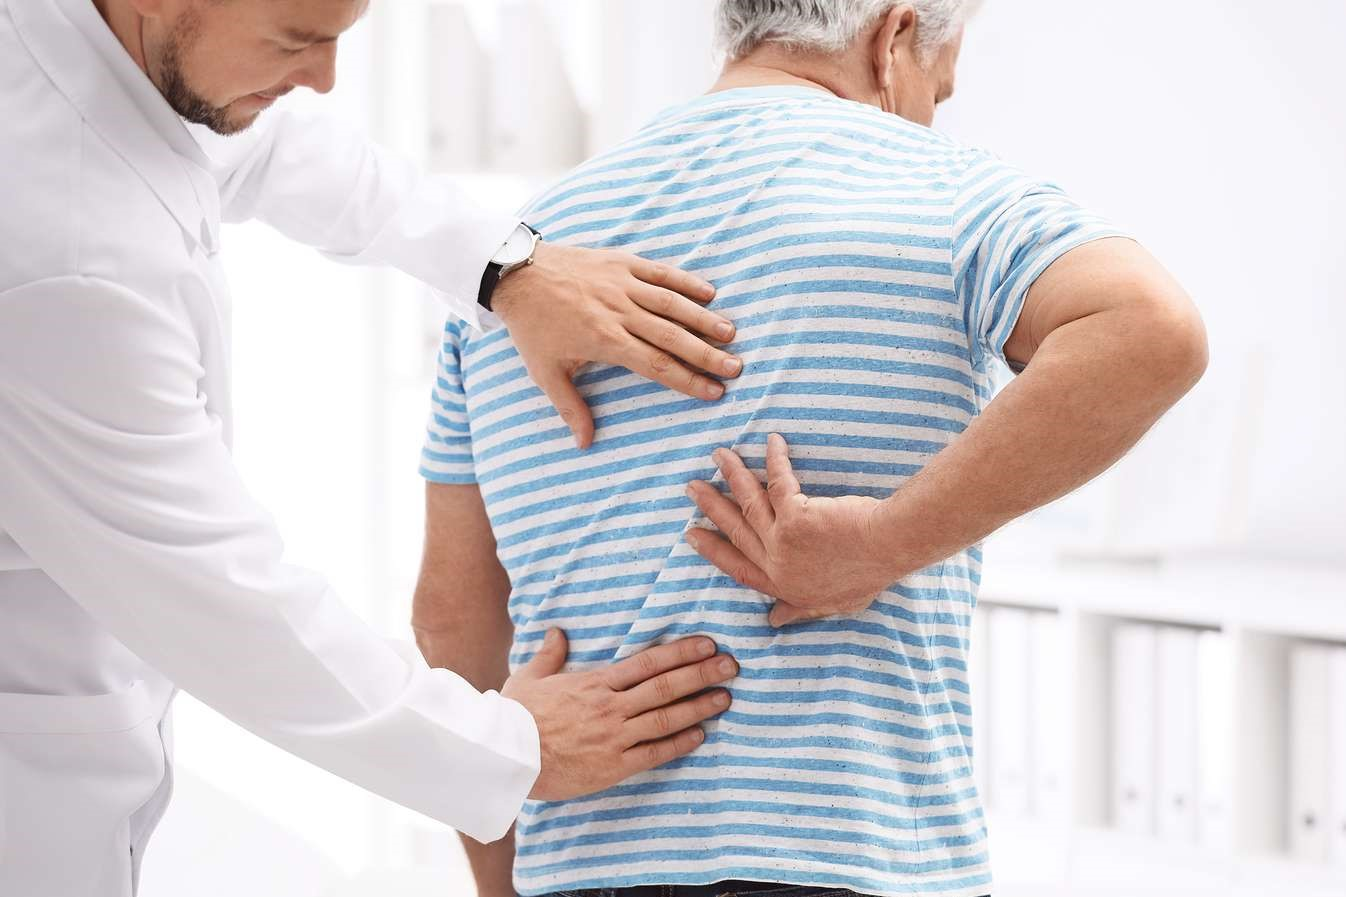 Does Medicare Cover Chiropractors?